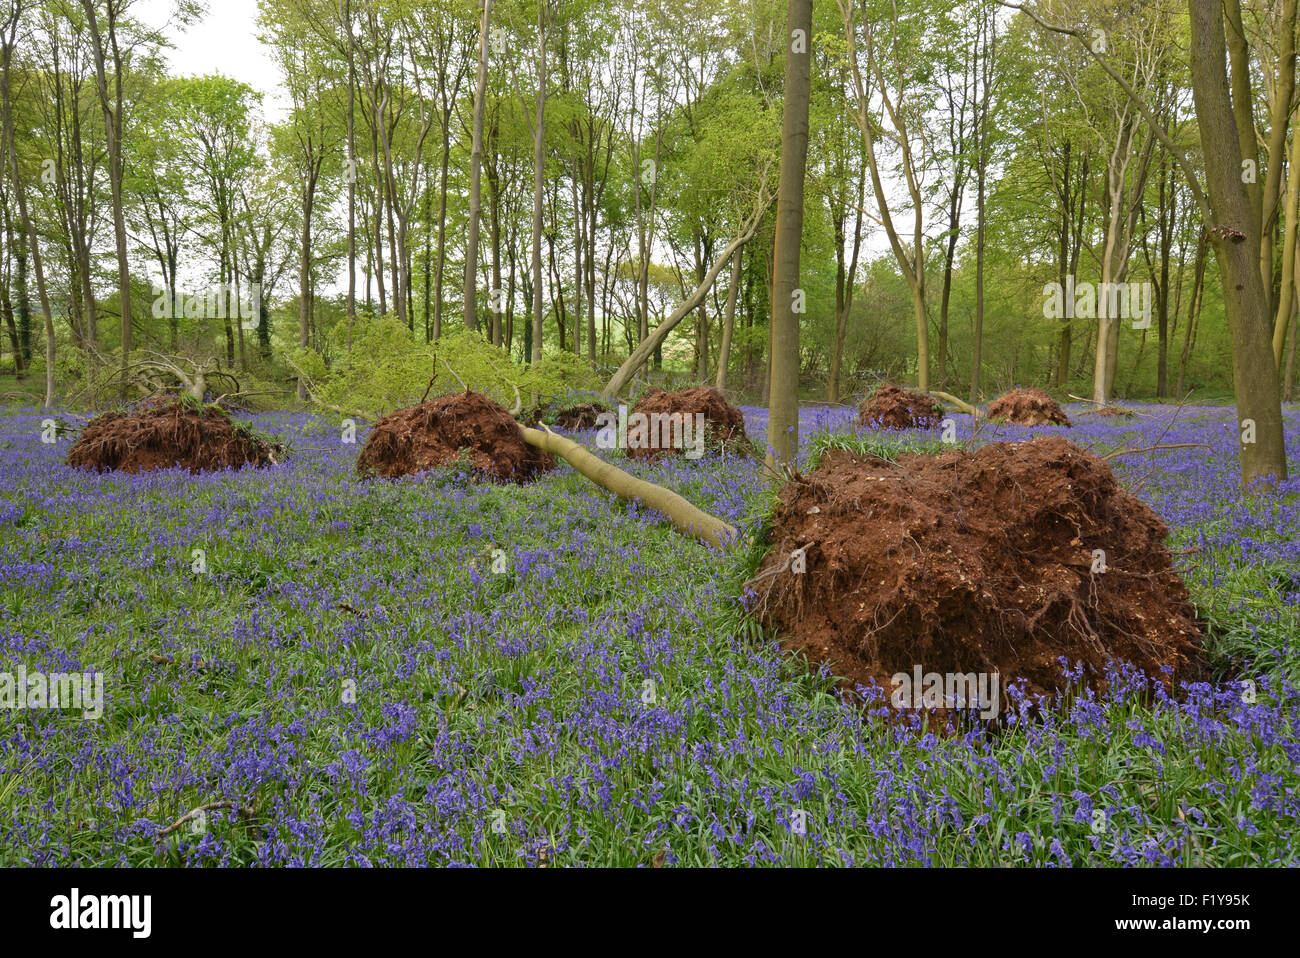 Uprooted beech trees following severe winter gales in early 2014 at Micheldever Wood in Hampshire, England - Stock Image